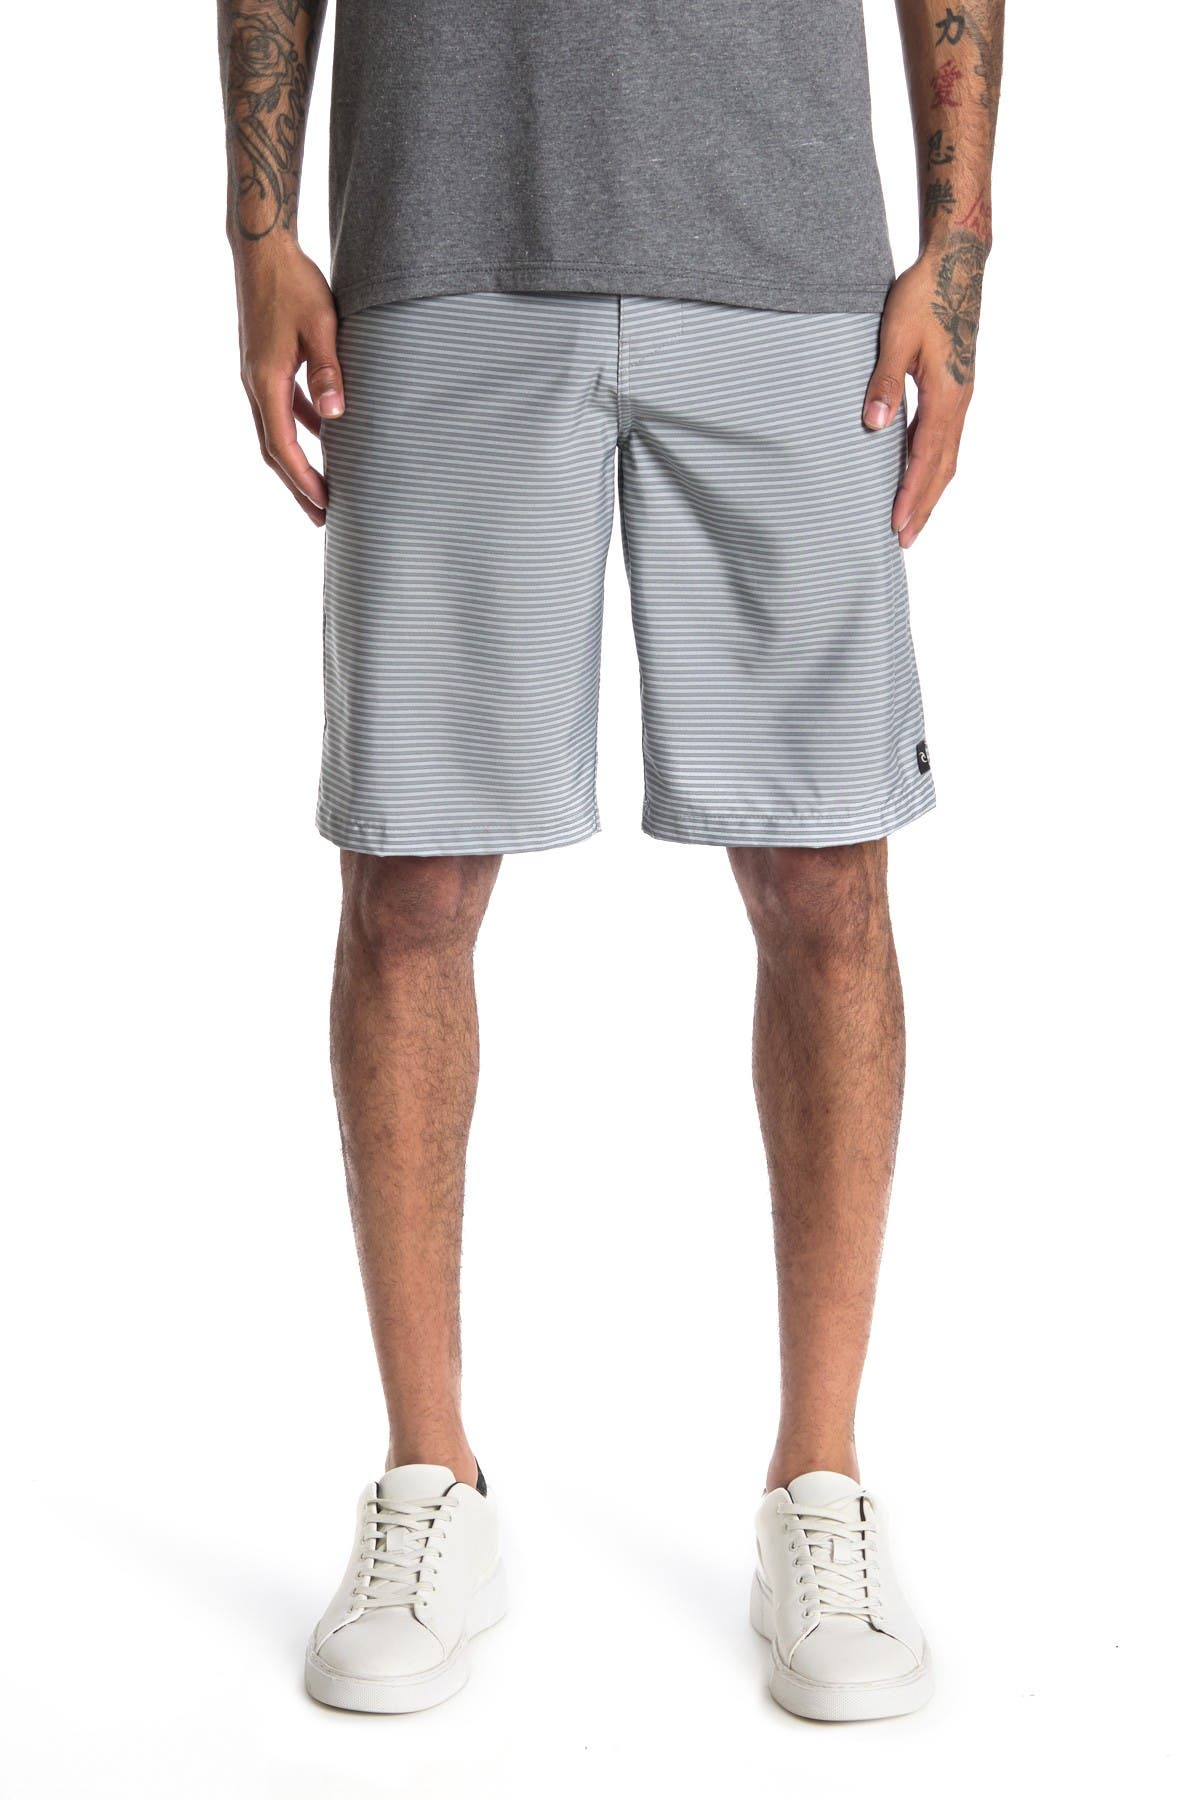 Image of Rip Curl Global Entry Boardwalk Shorts